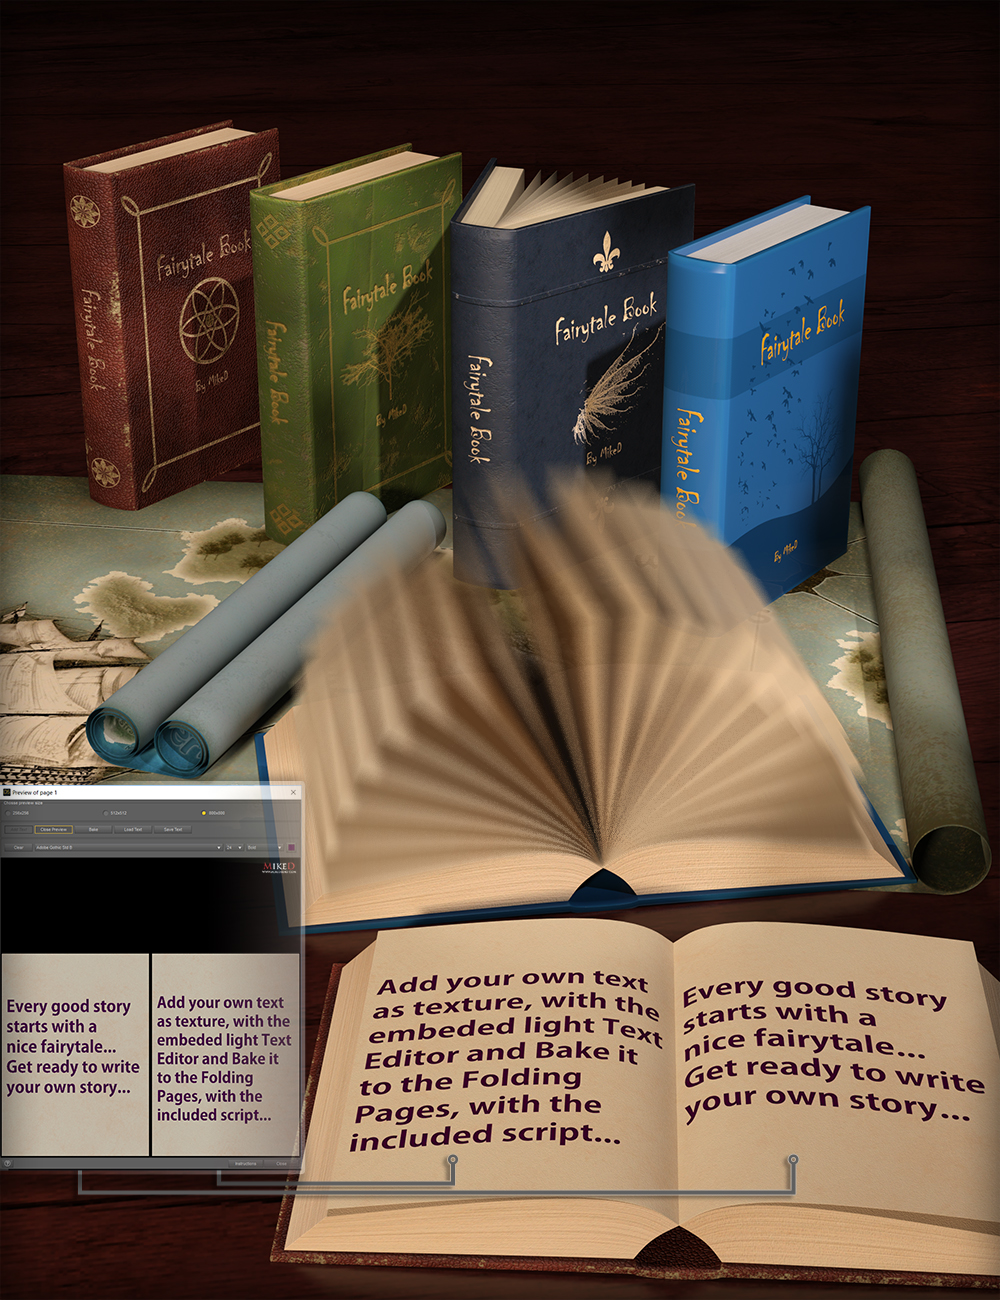 The Fairytale Book by: MikeD, 3D Models by Daz 3D